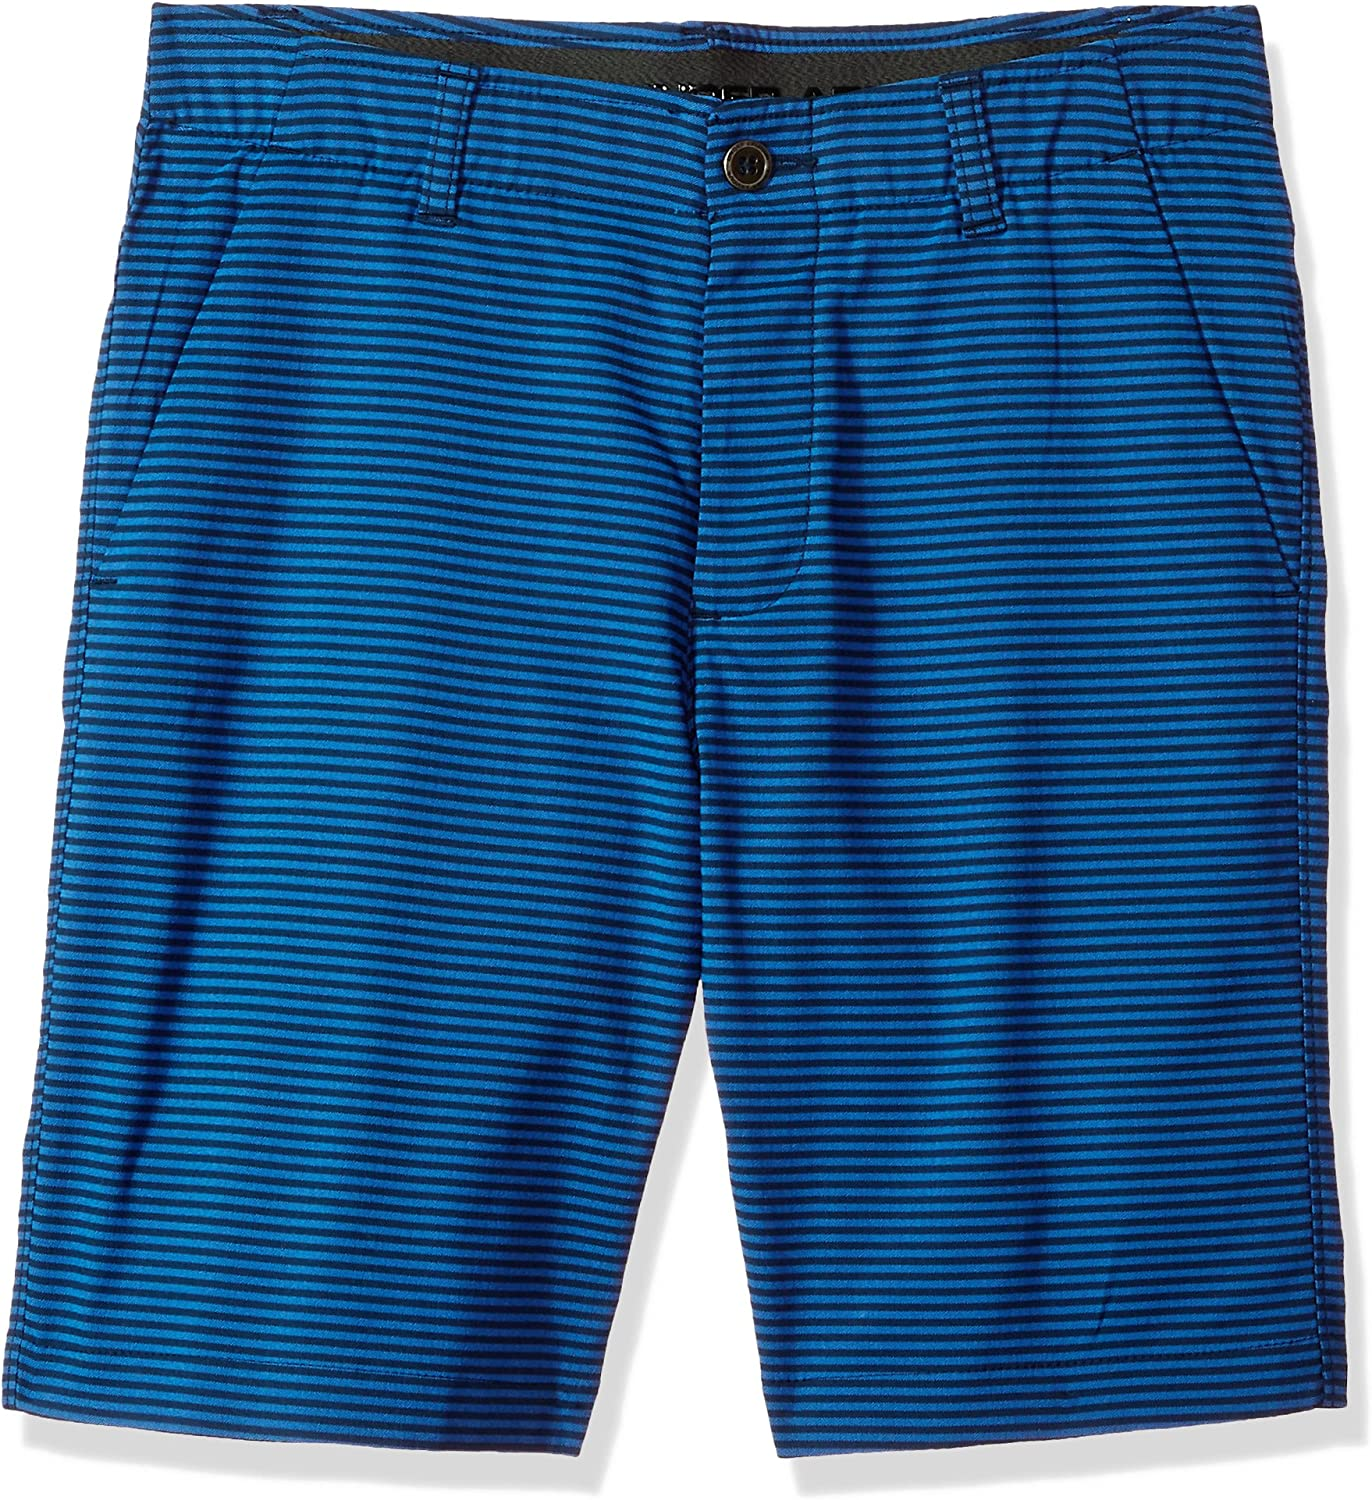 Under Armour Men's Takeover Golf Short Pattern